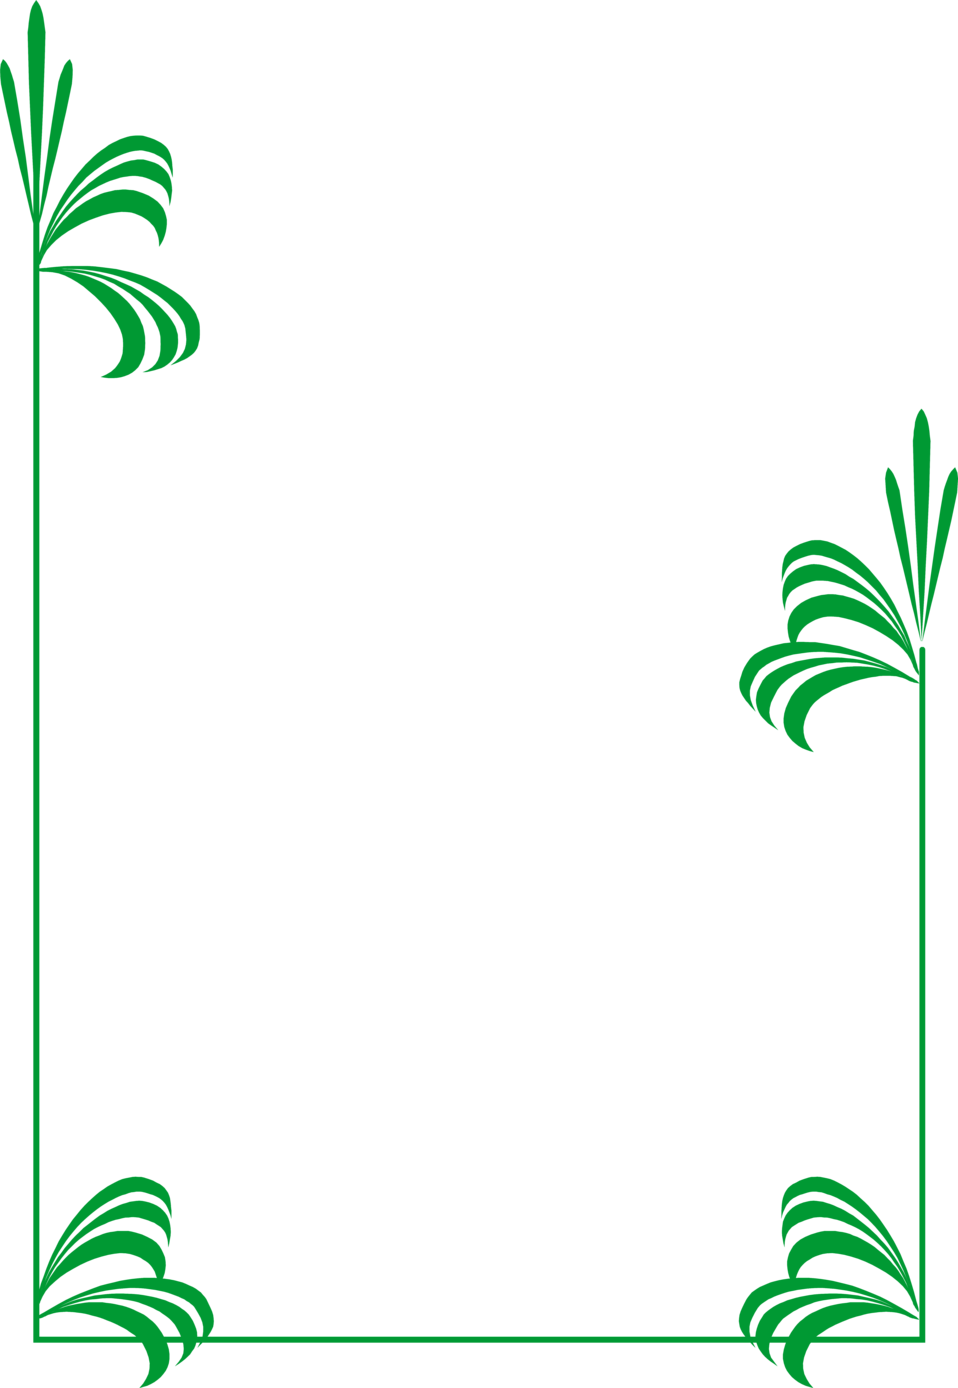 Illustration of a blank frame border with green leaves.